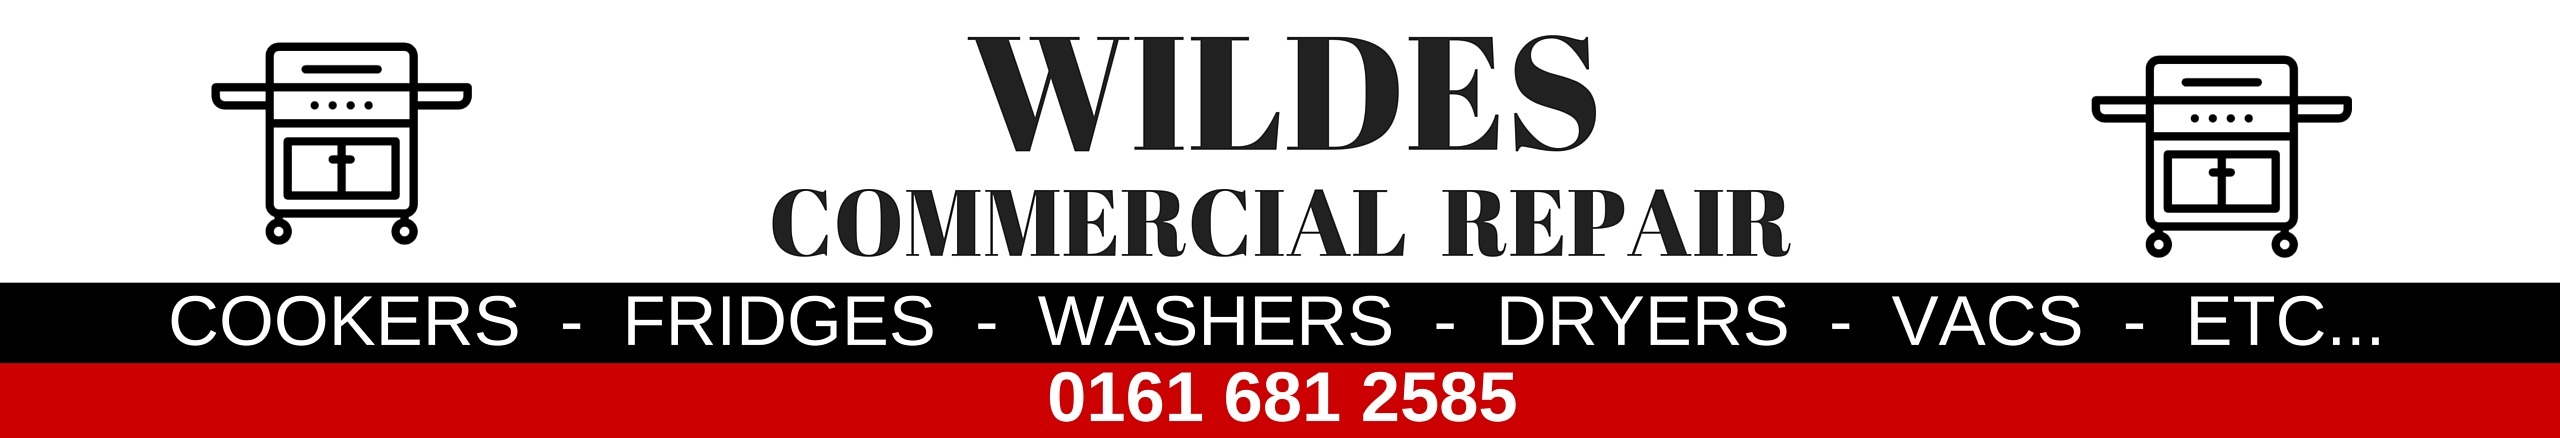 Commercial domestic appliance repair